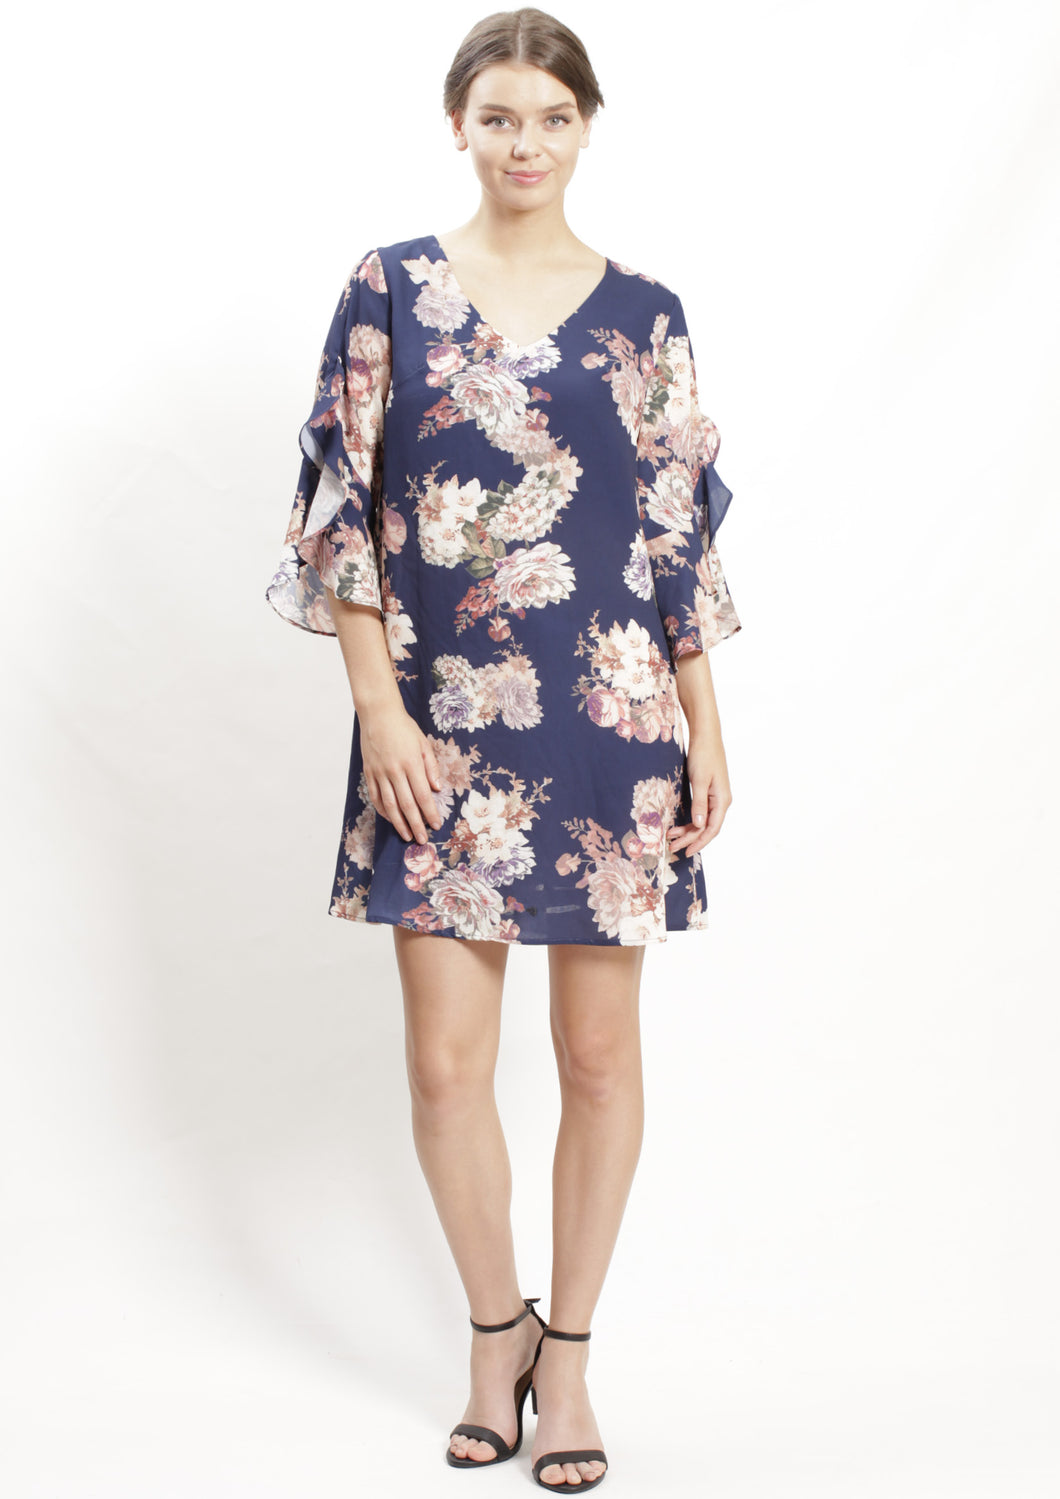 RV0998-6NC Floral Print Ruffle Sleeve Dress (Pack)